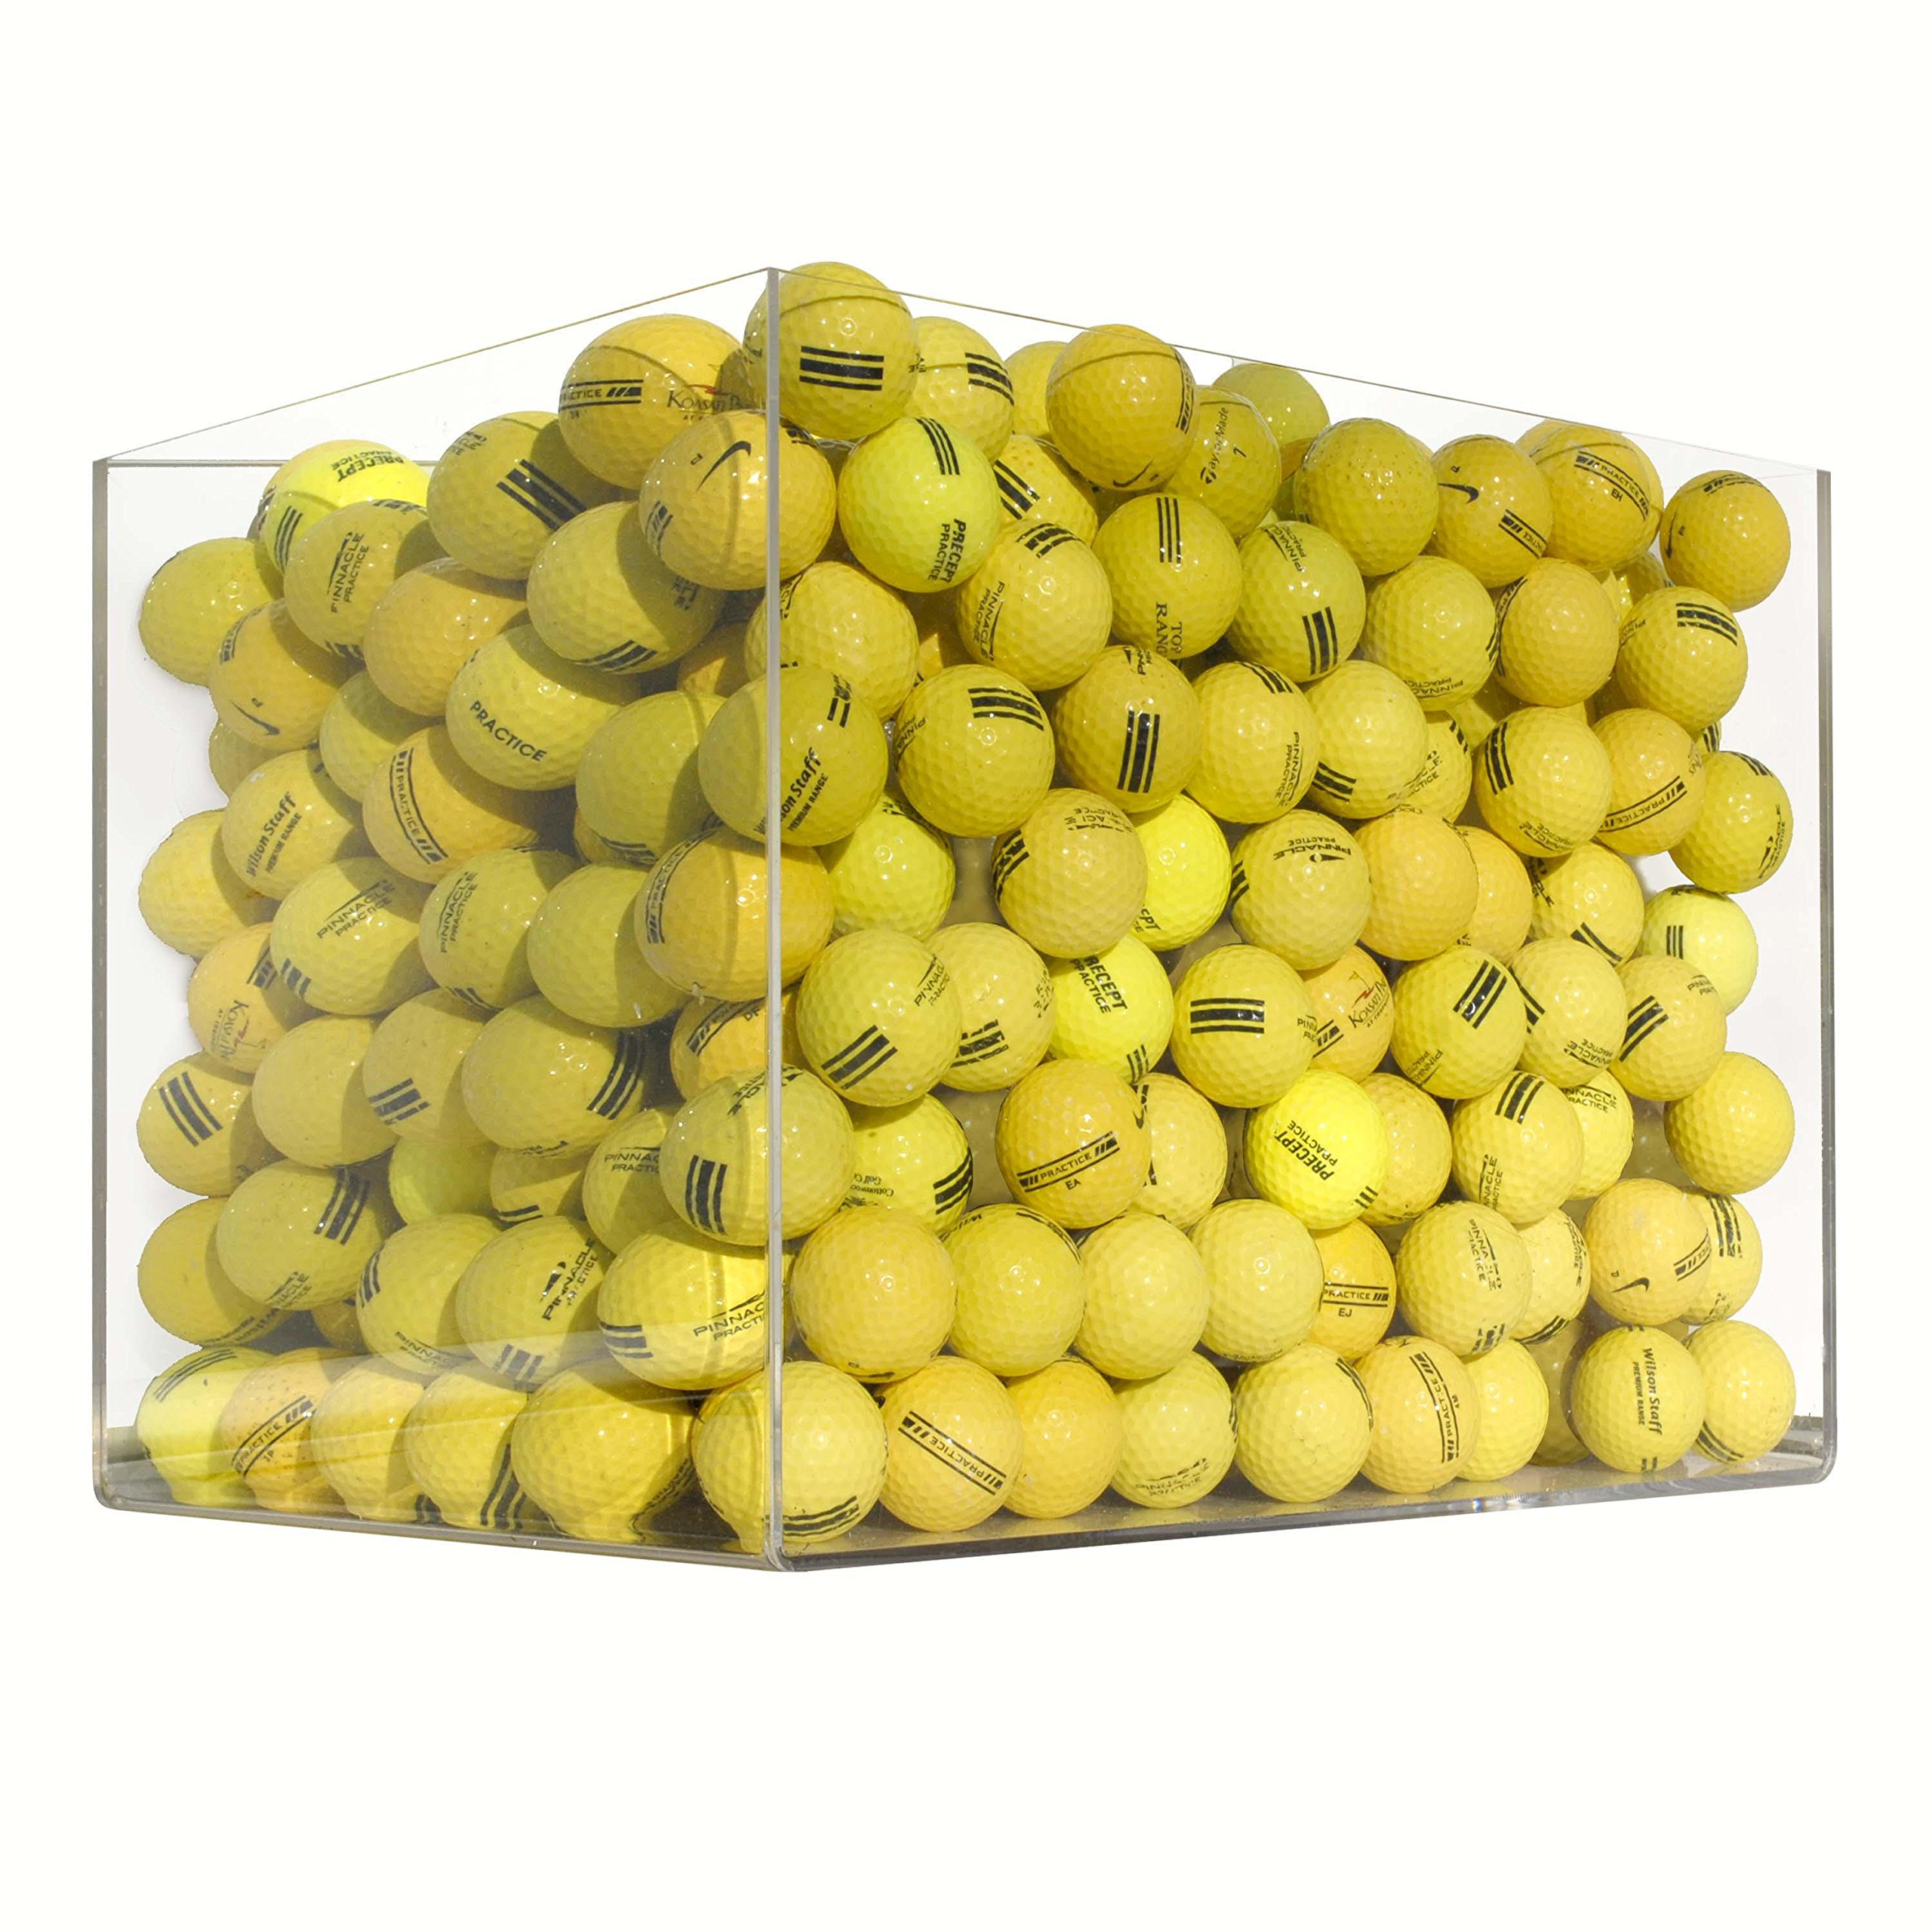 500 Range Yellow Mix - Practice Grade (Shag) - Recycled (Used) Golf Balls